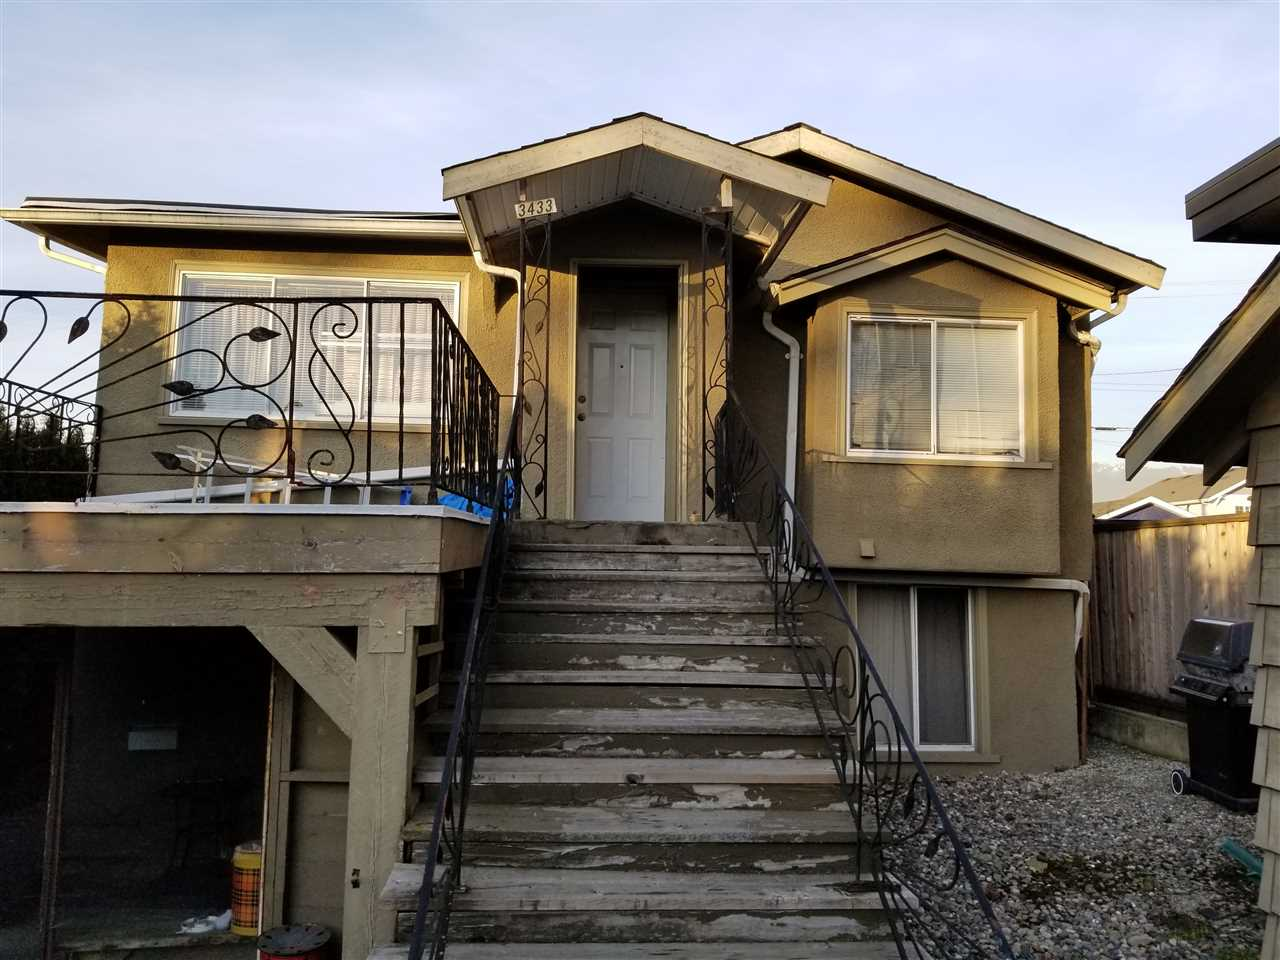 3598 Franklin Street, Vancouver | Sold on Jun 13 | Zolo ca